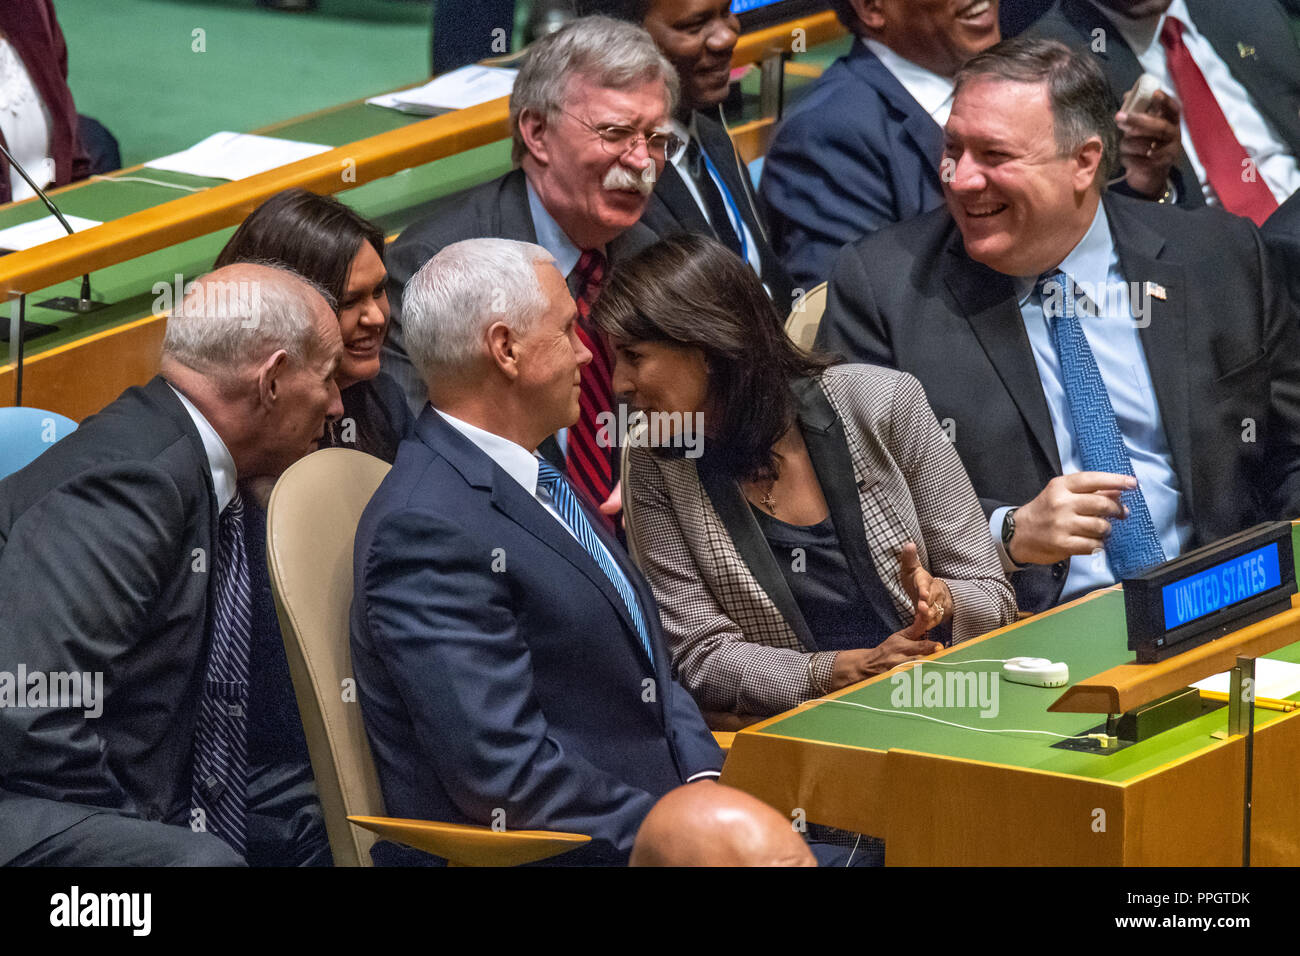 New York, USA, 25 September 2018. L-R: White House Chief of Staff John Kelly, press secretary Sarah Huckabee Sanders, US Vice-President Mike Pence, UN Ambassador Nikki Haley, National Security Advisor John Bolton and Secretary of State Mike Pompeo share a light moment at the United Nations General Assembly as they await the speech by President Donald Trump. Photo by Enrique Shore Credit: Enrique Shore/Alamy Live News - Stock Image